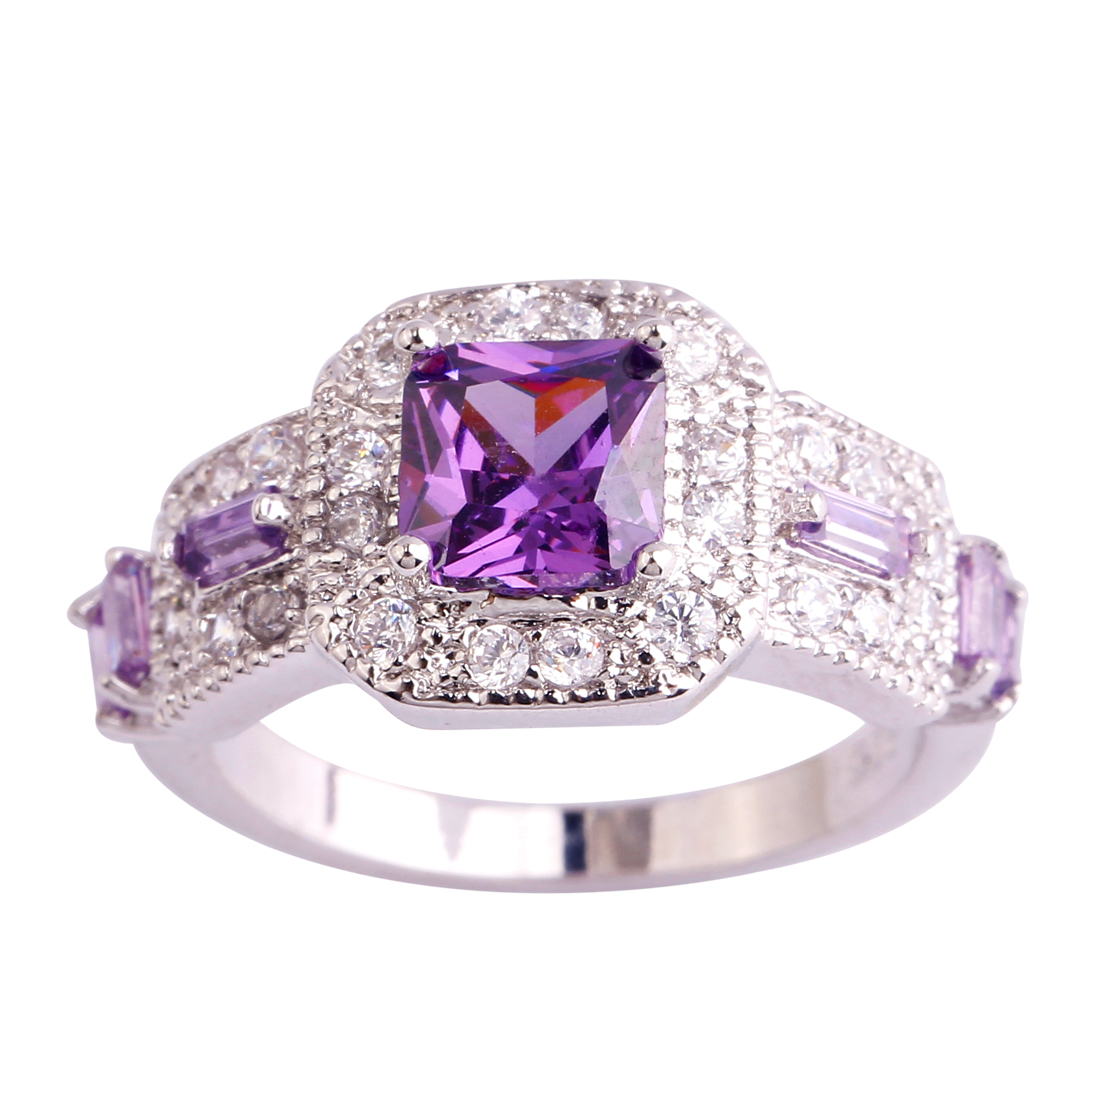 Lingmei Wholesale Plated Silver Ring Size 6 7 8 9 10 11 Purple ring CZ Handmade Crystal Jewelry Men Women